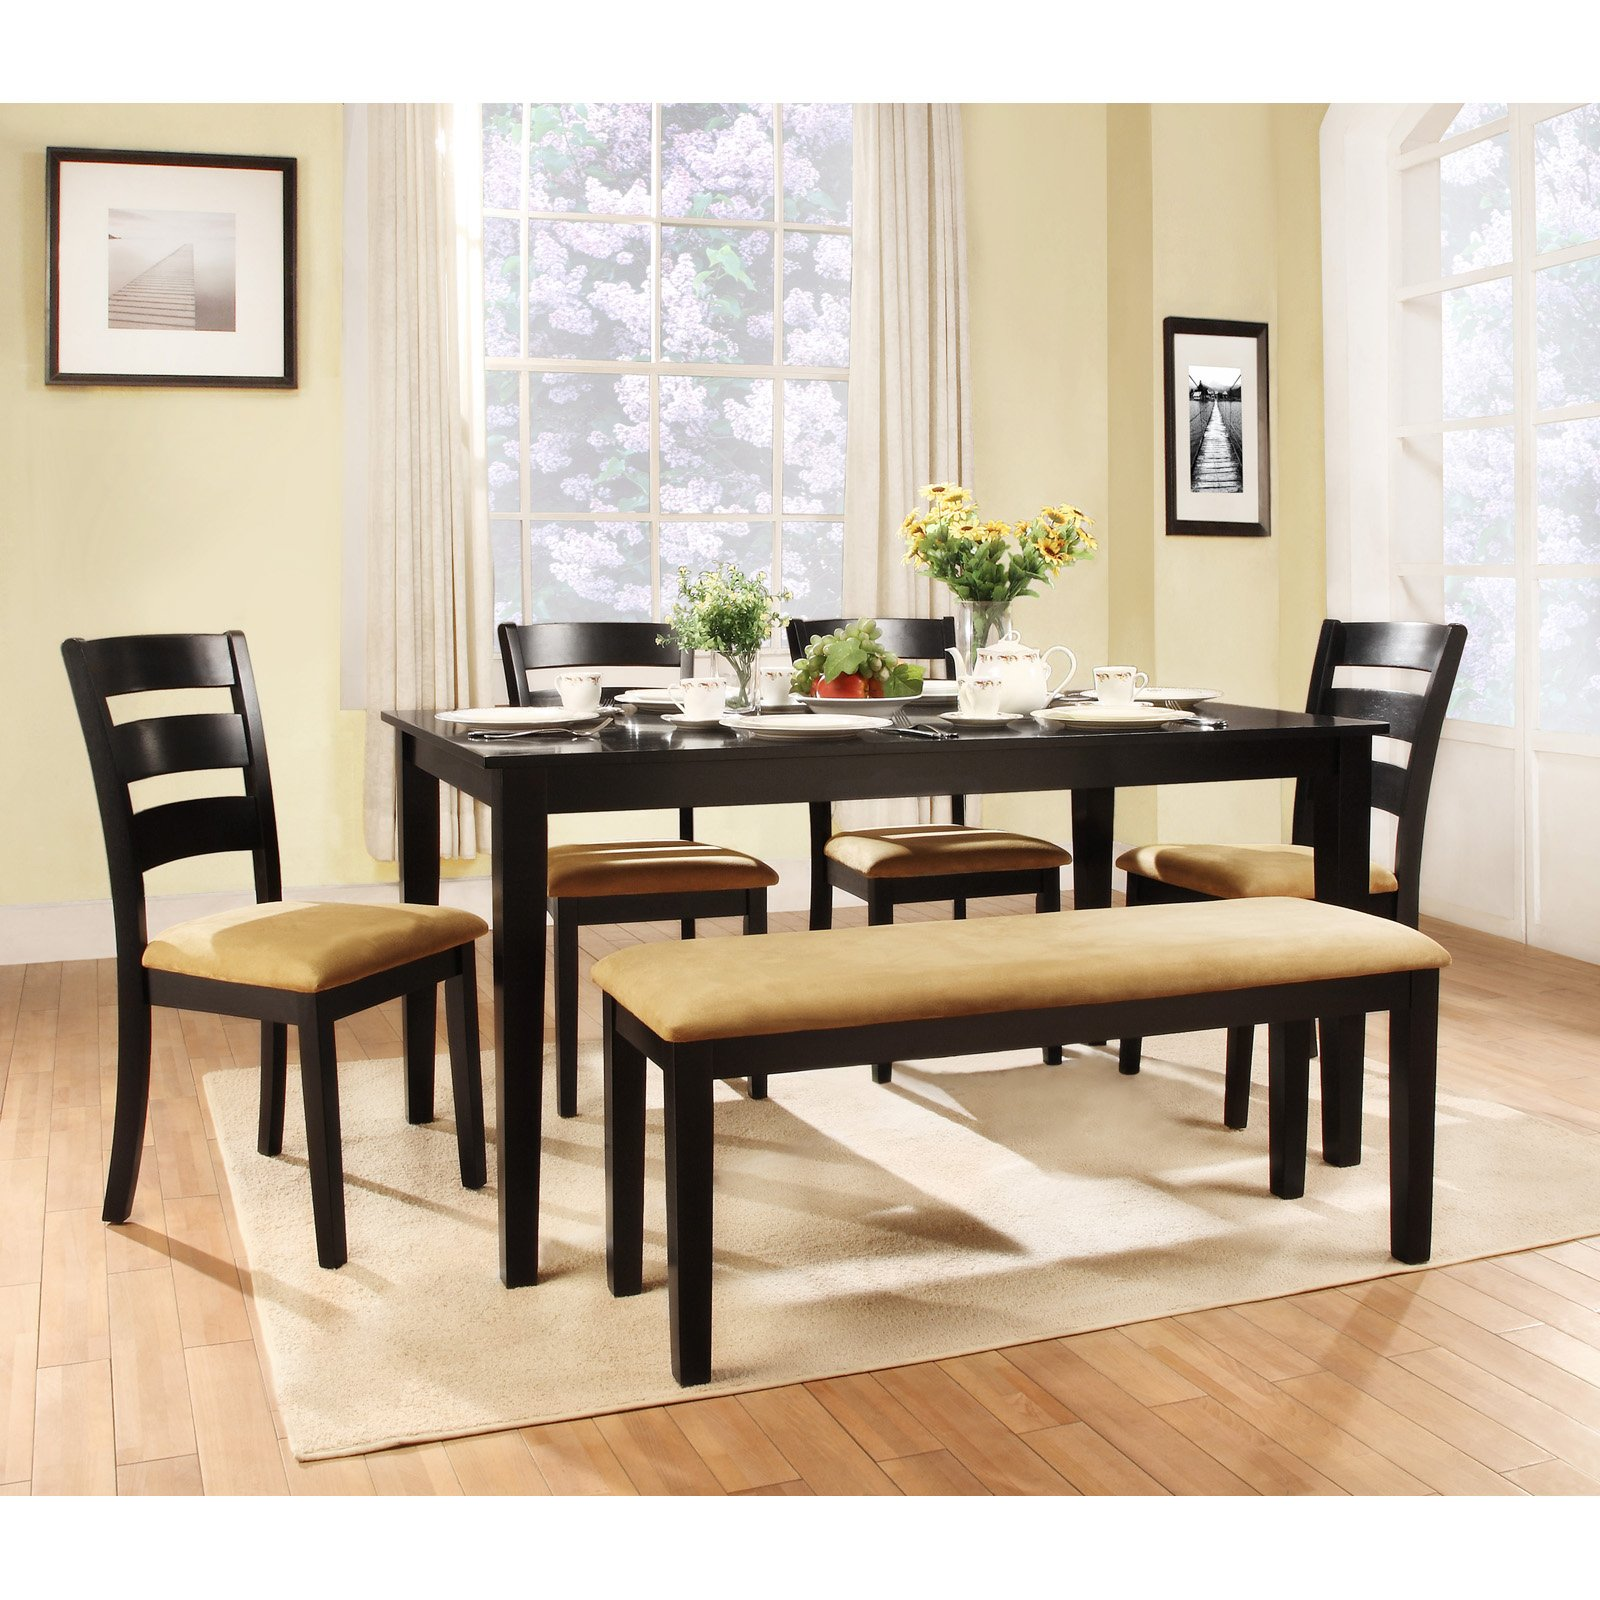 Modern bench style dining table set ideas homesfeed for Dining set design